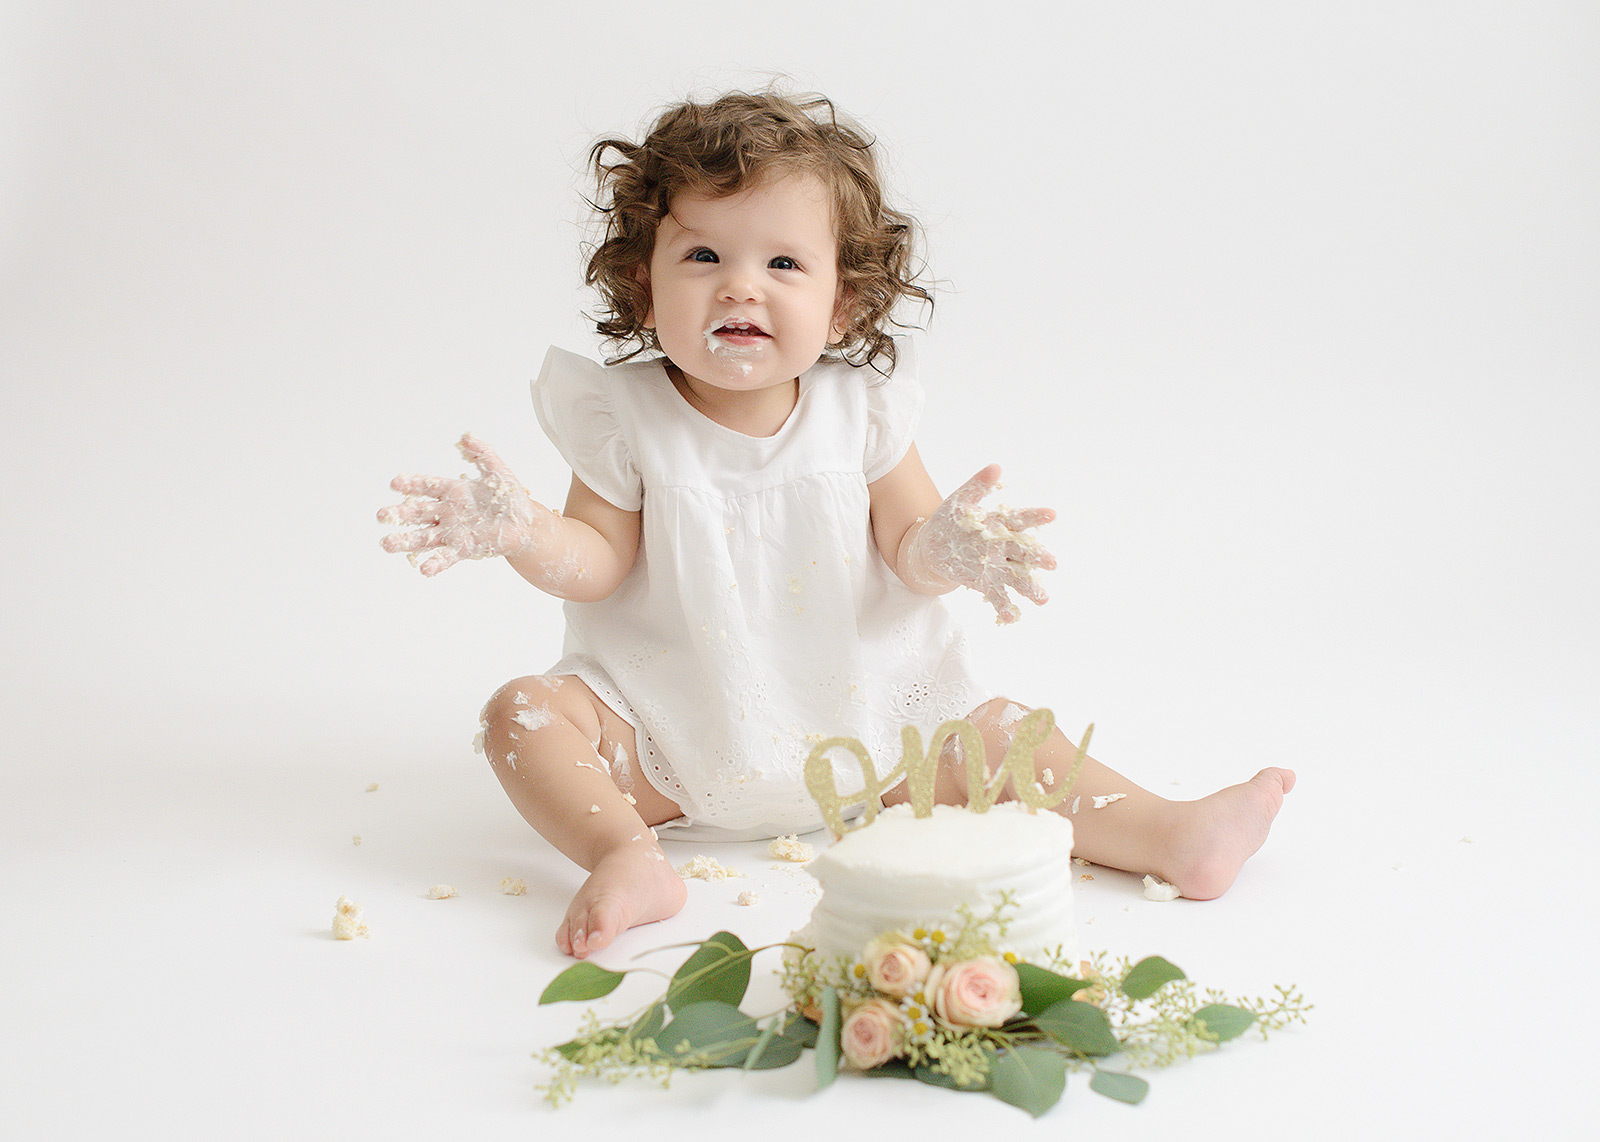 One Year Old Baby Girl Smashing Cake with Flowers